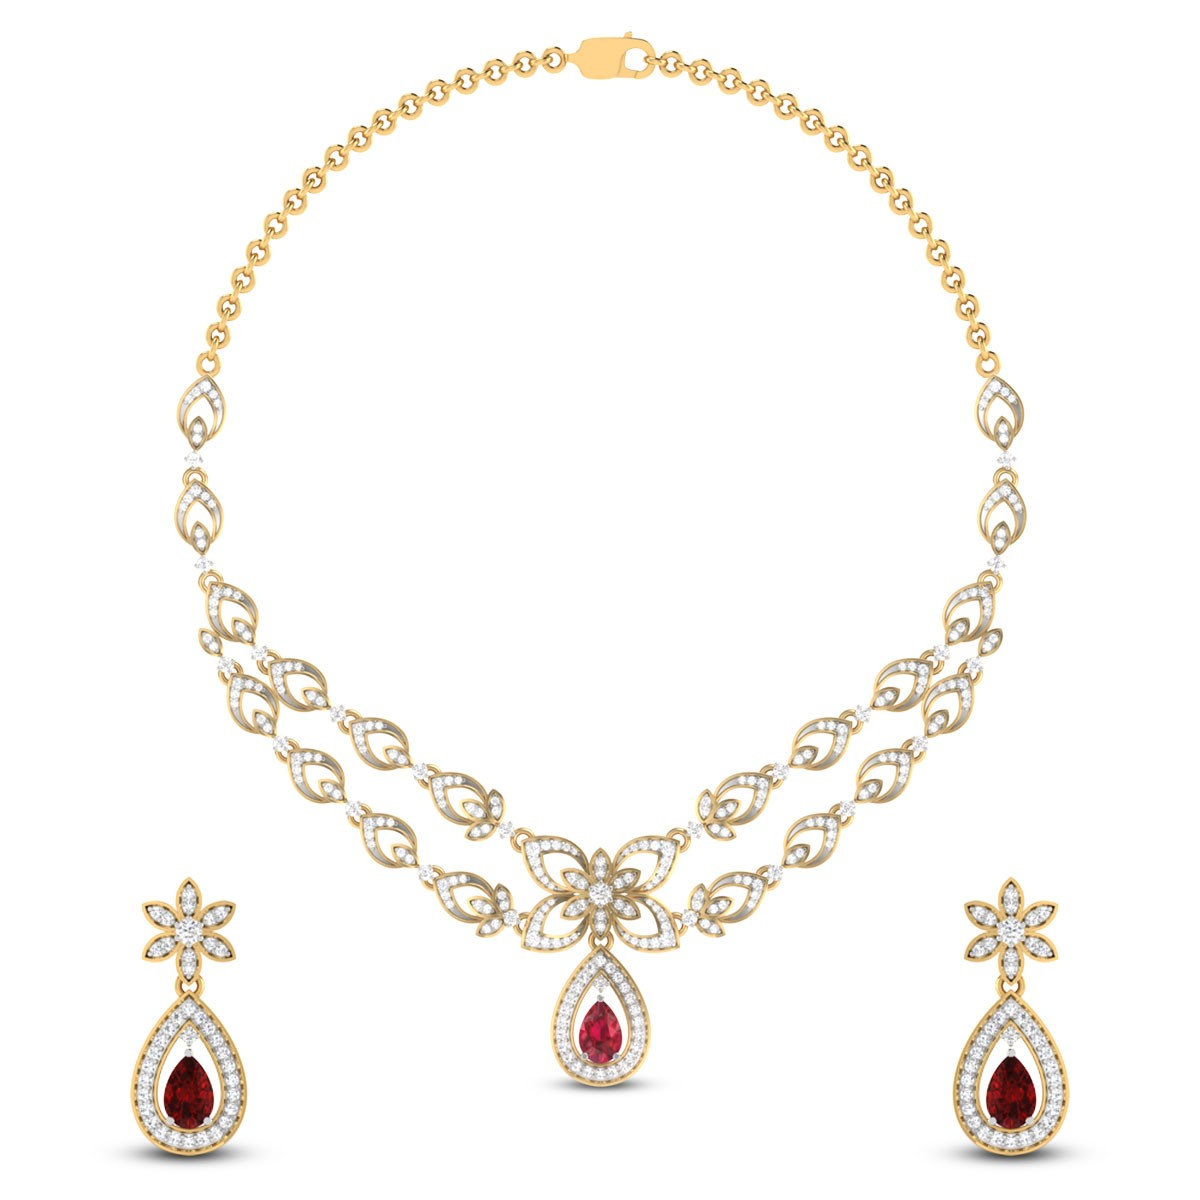 Sequential Floral Diamond Necklace